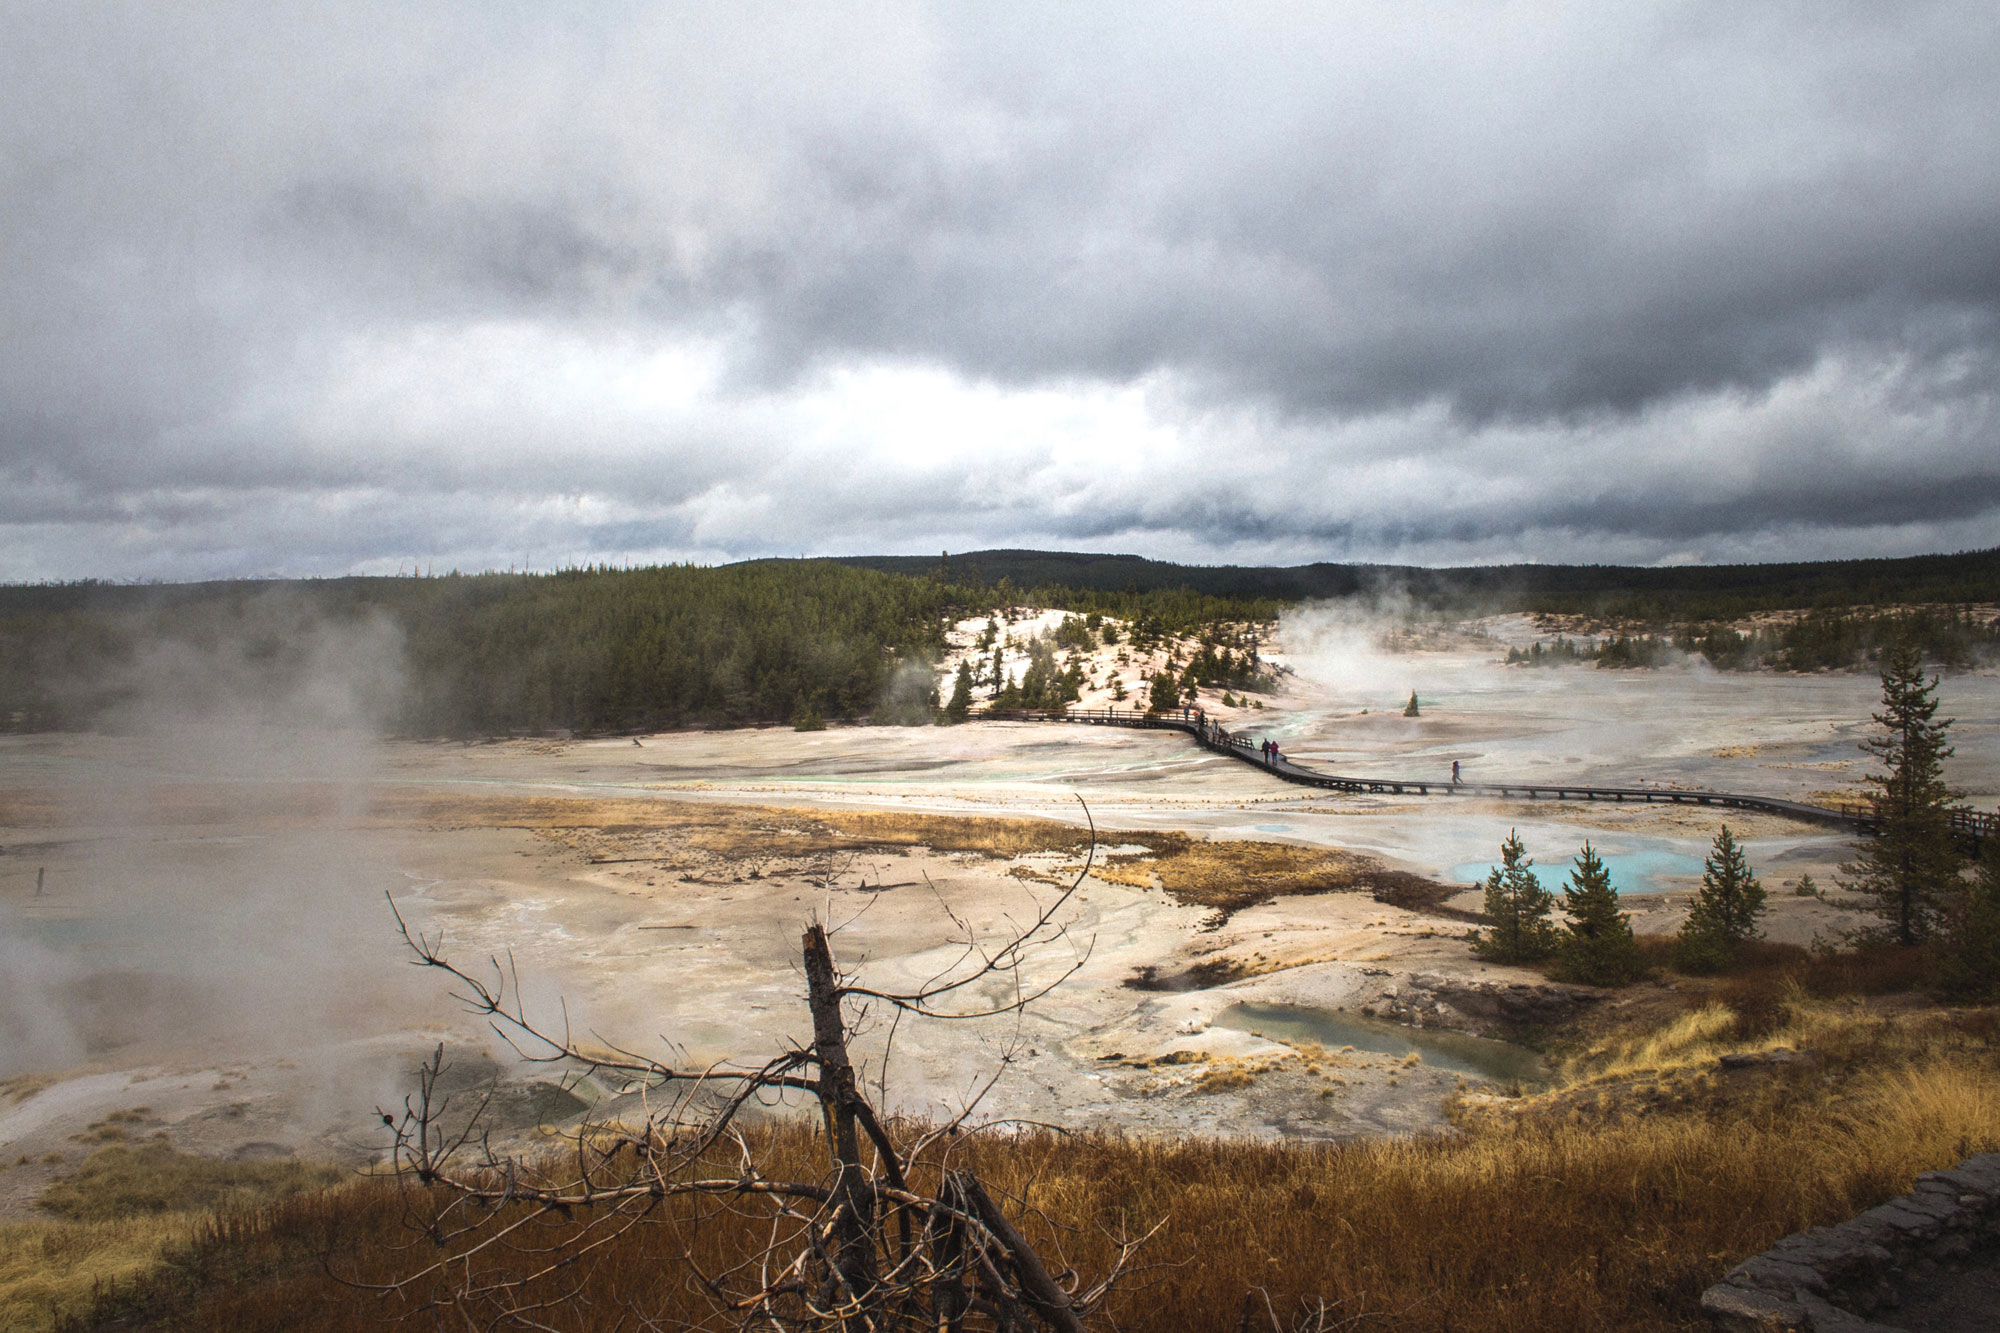 Thermals in Yellowstone National Park